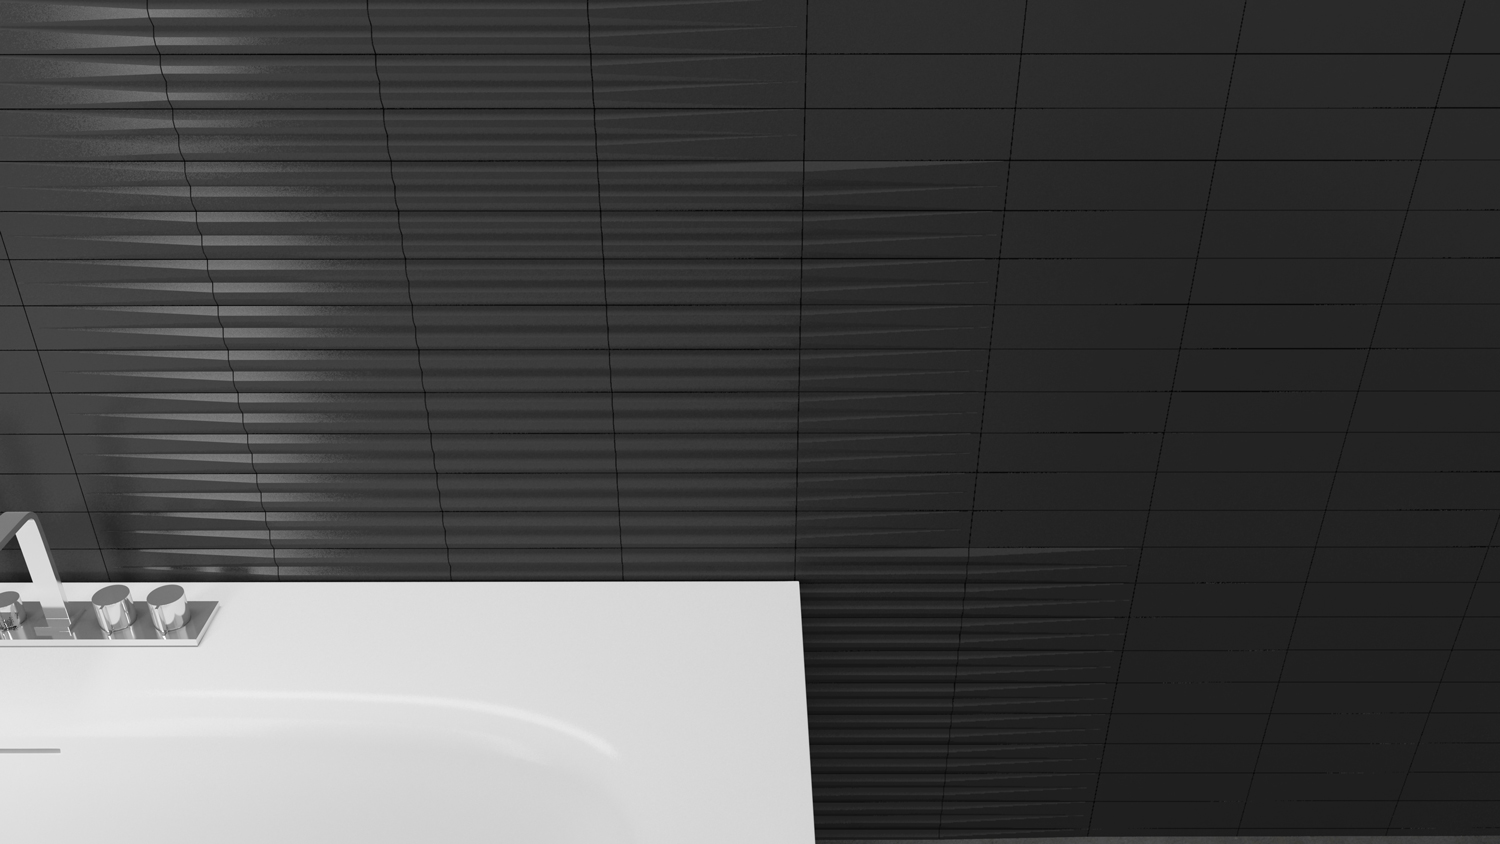 stripes_graphite_sink.jpg